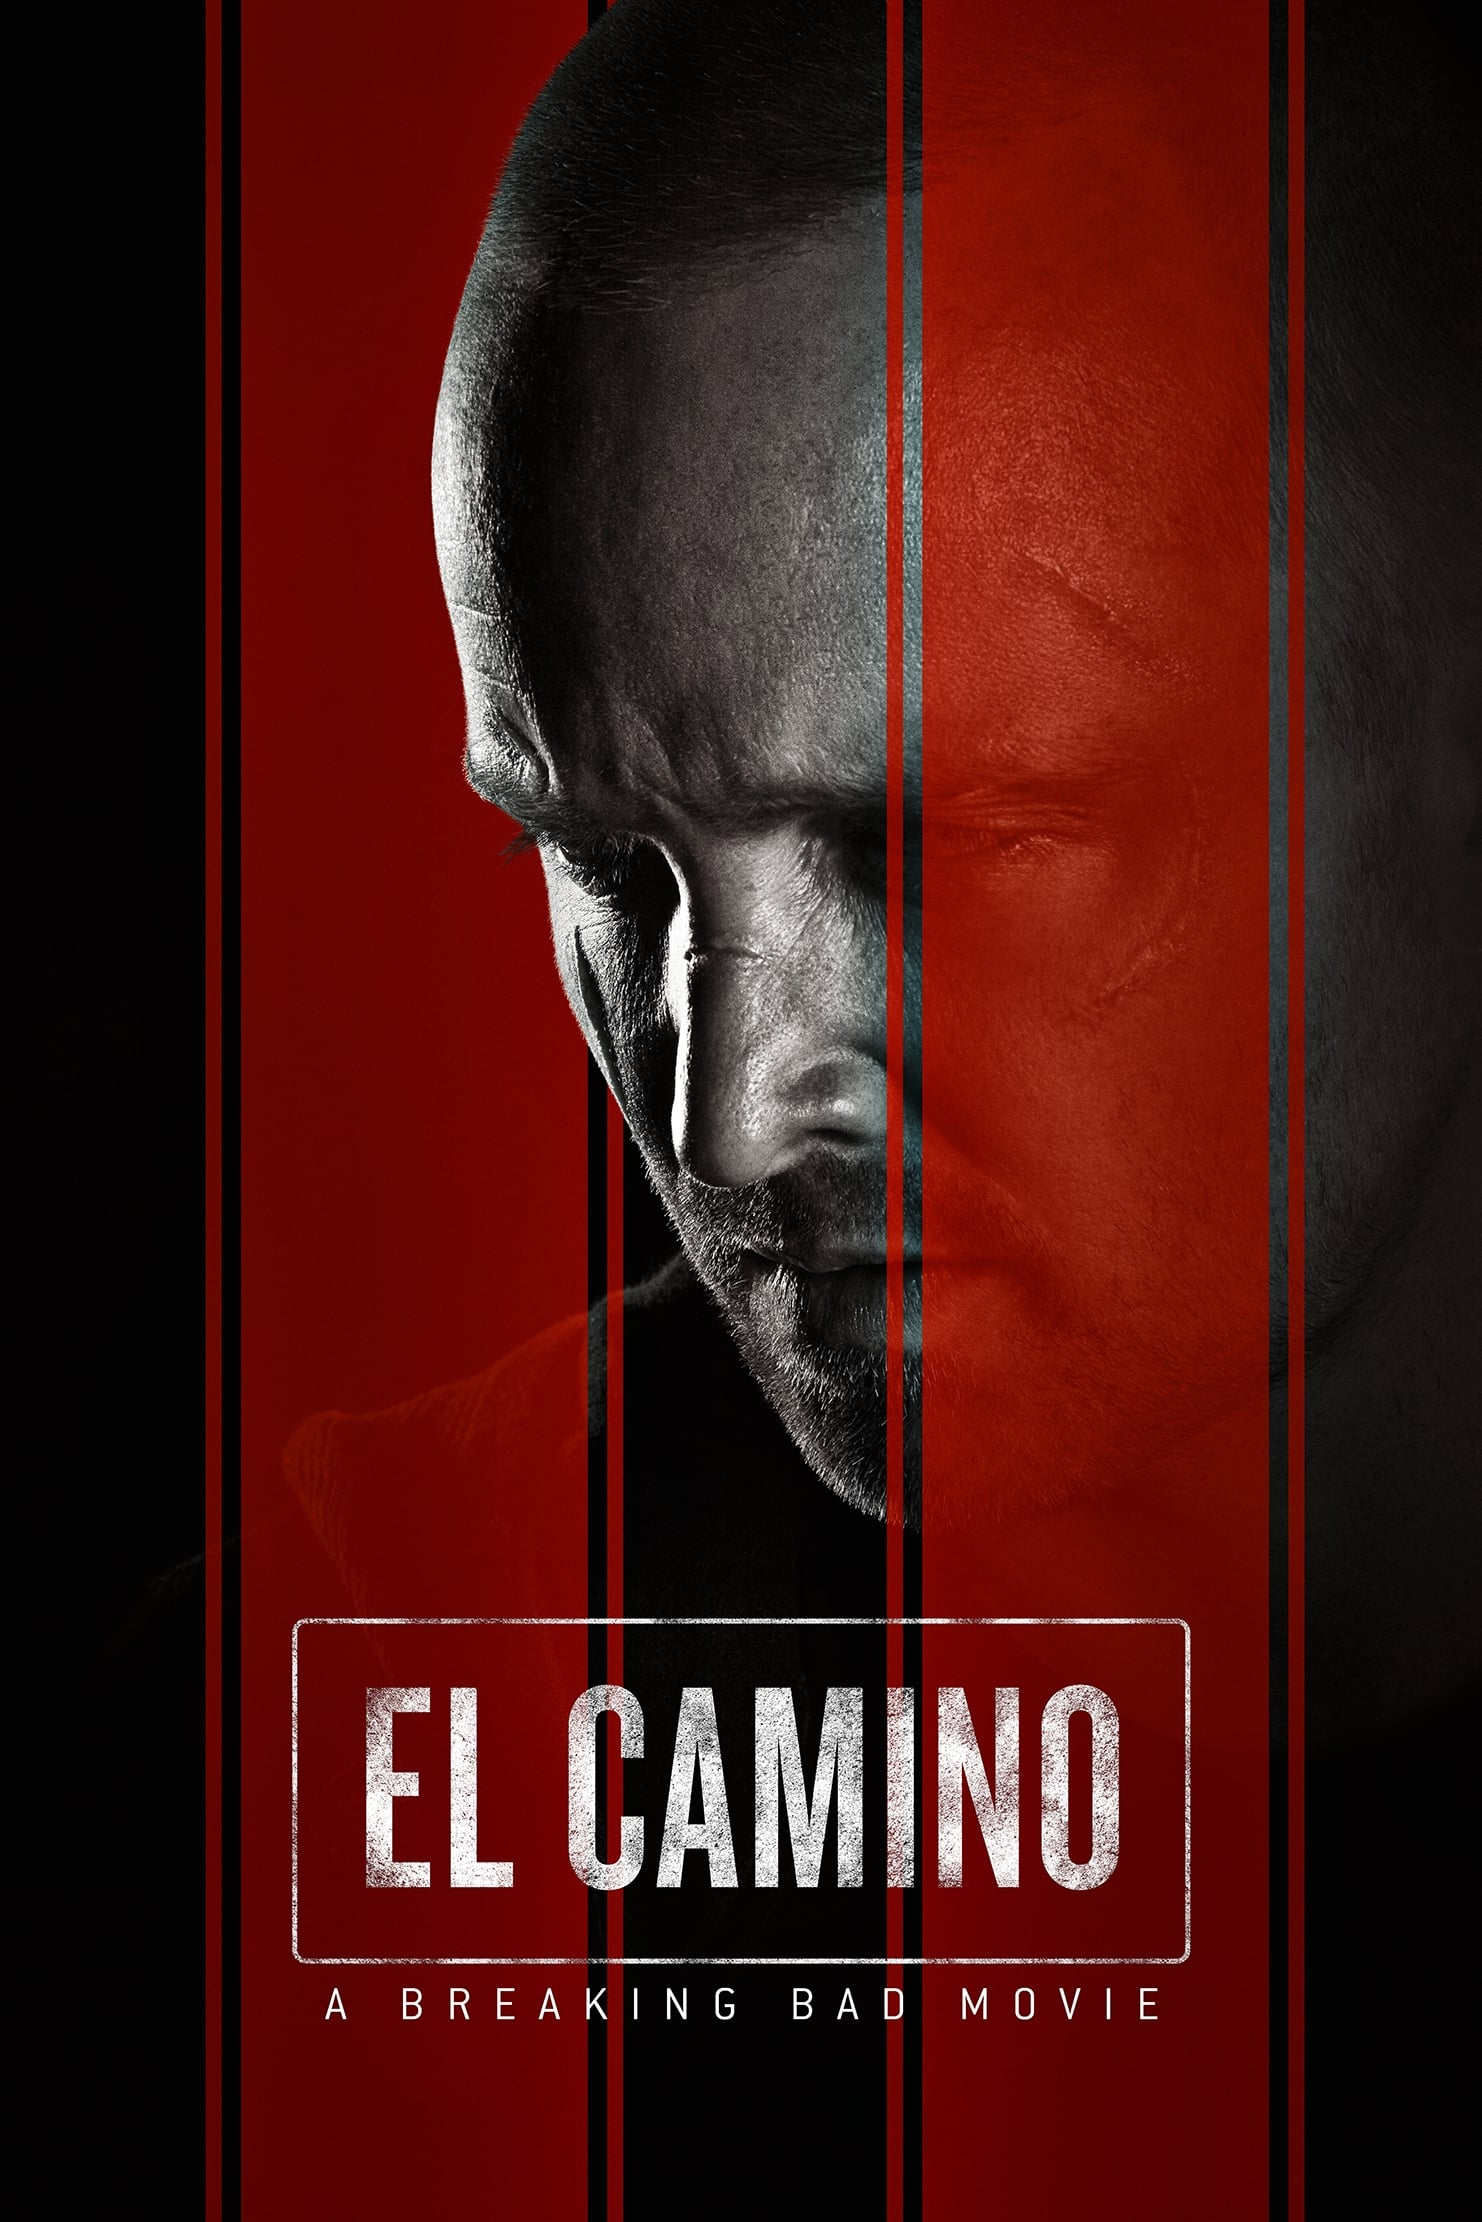 El Camino: A Breaking Bad Movie / El Camino: Μια Ταινία του Breaking Bad